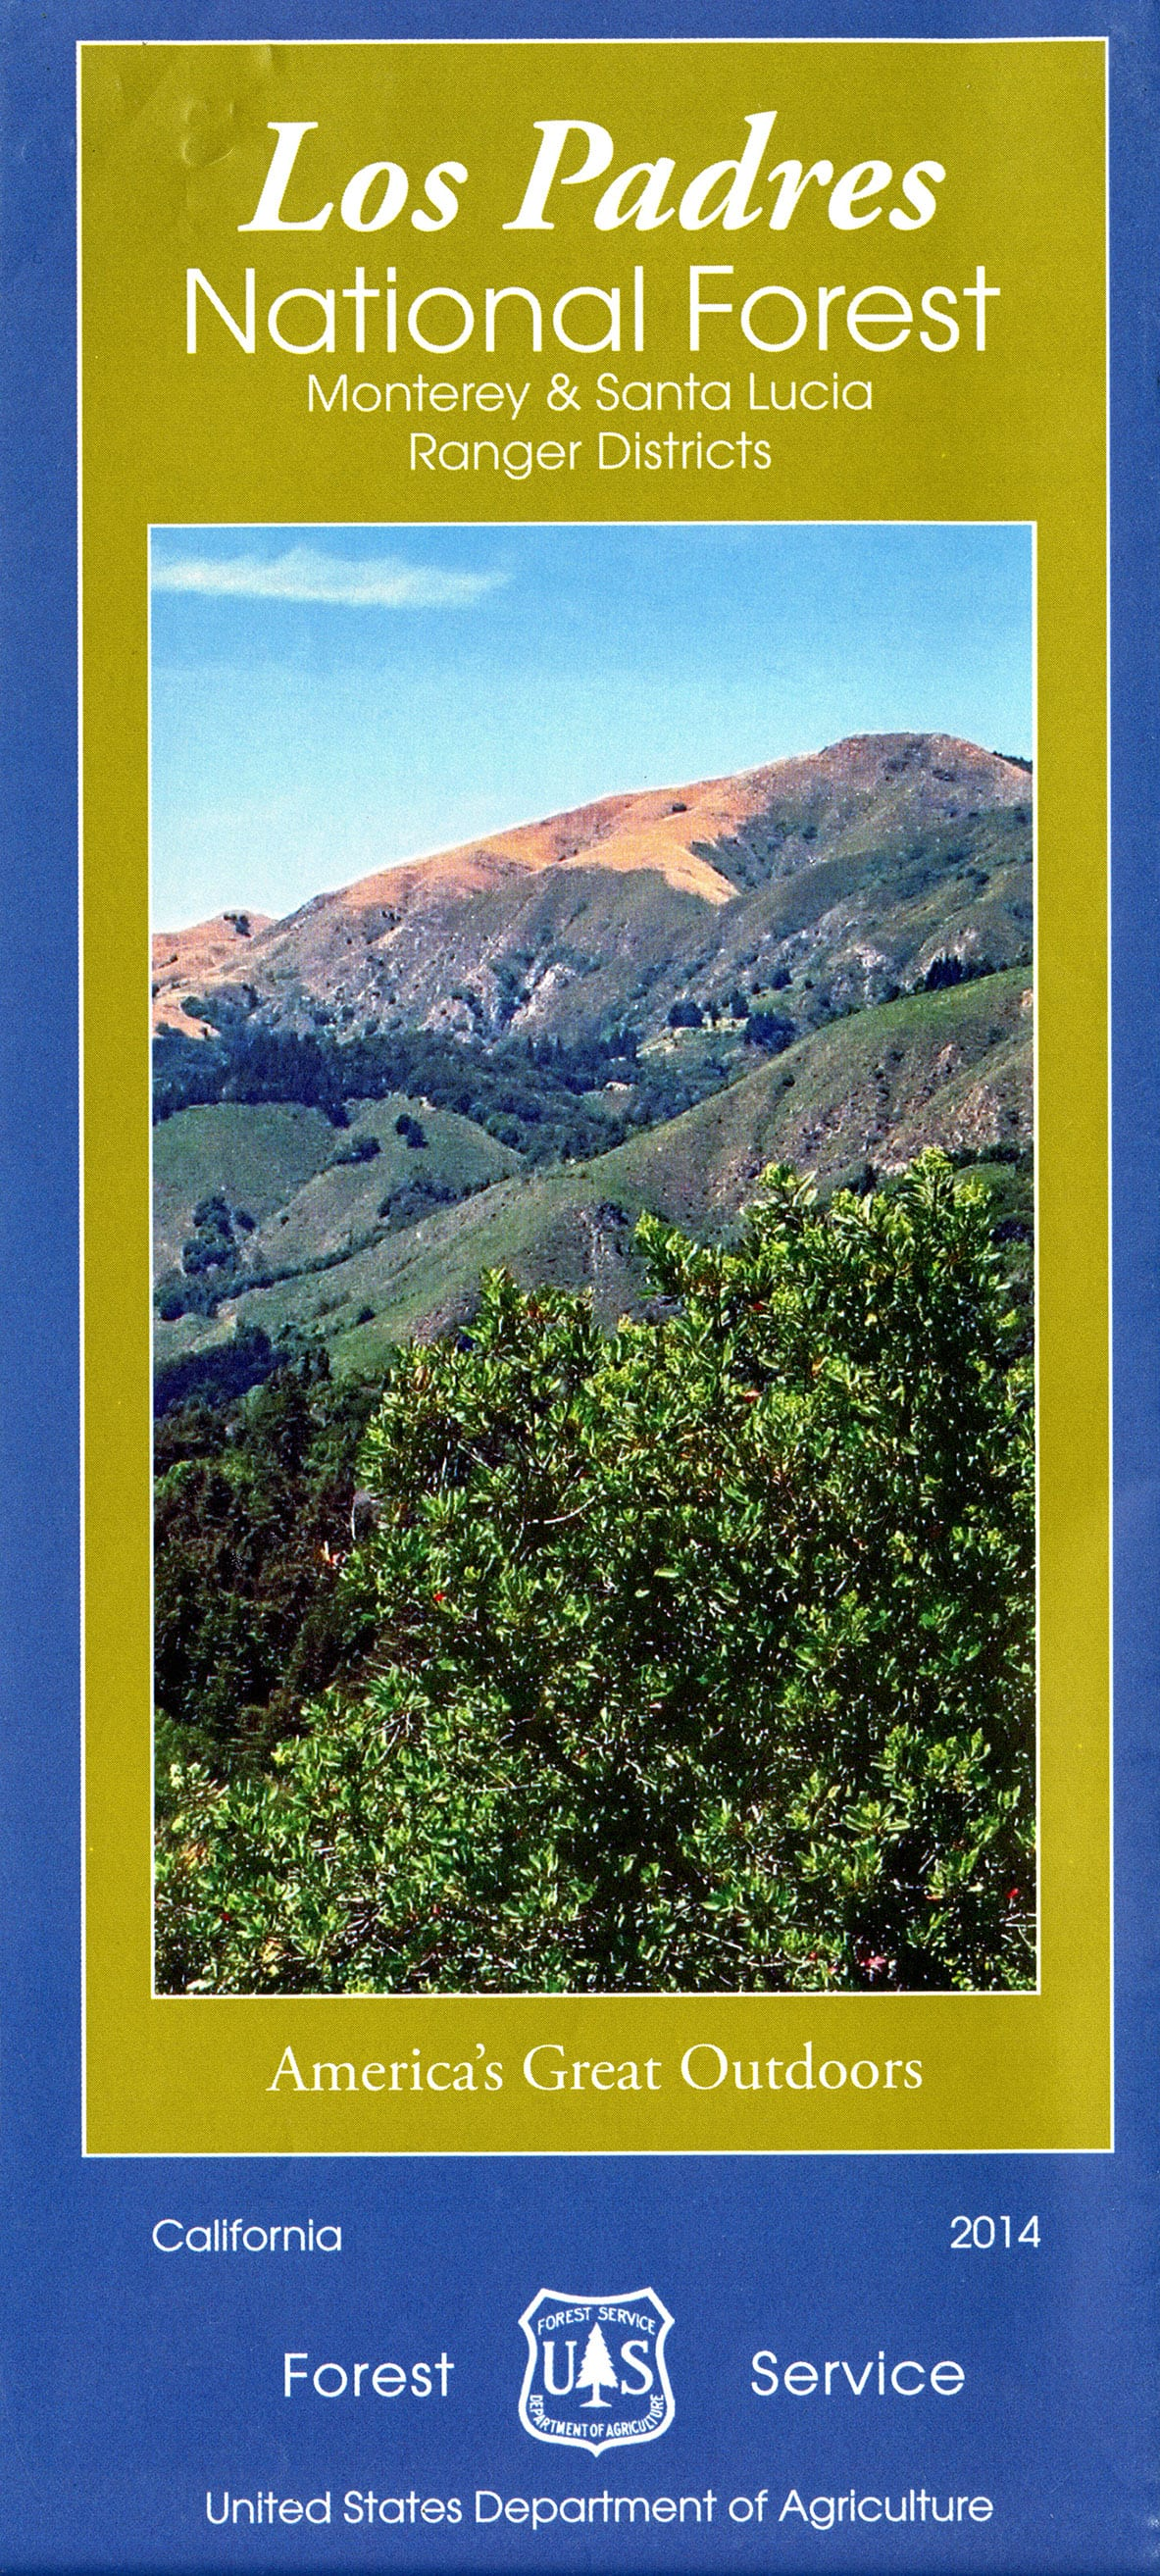 50 Features For Special Collections Outdoor Recreation